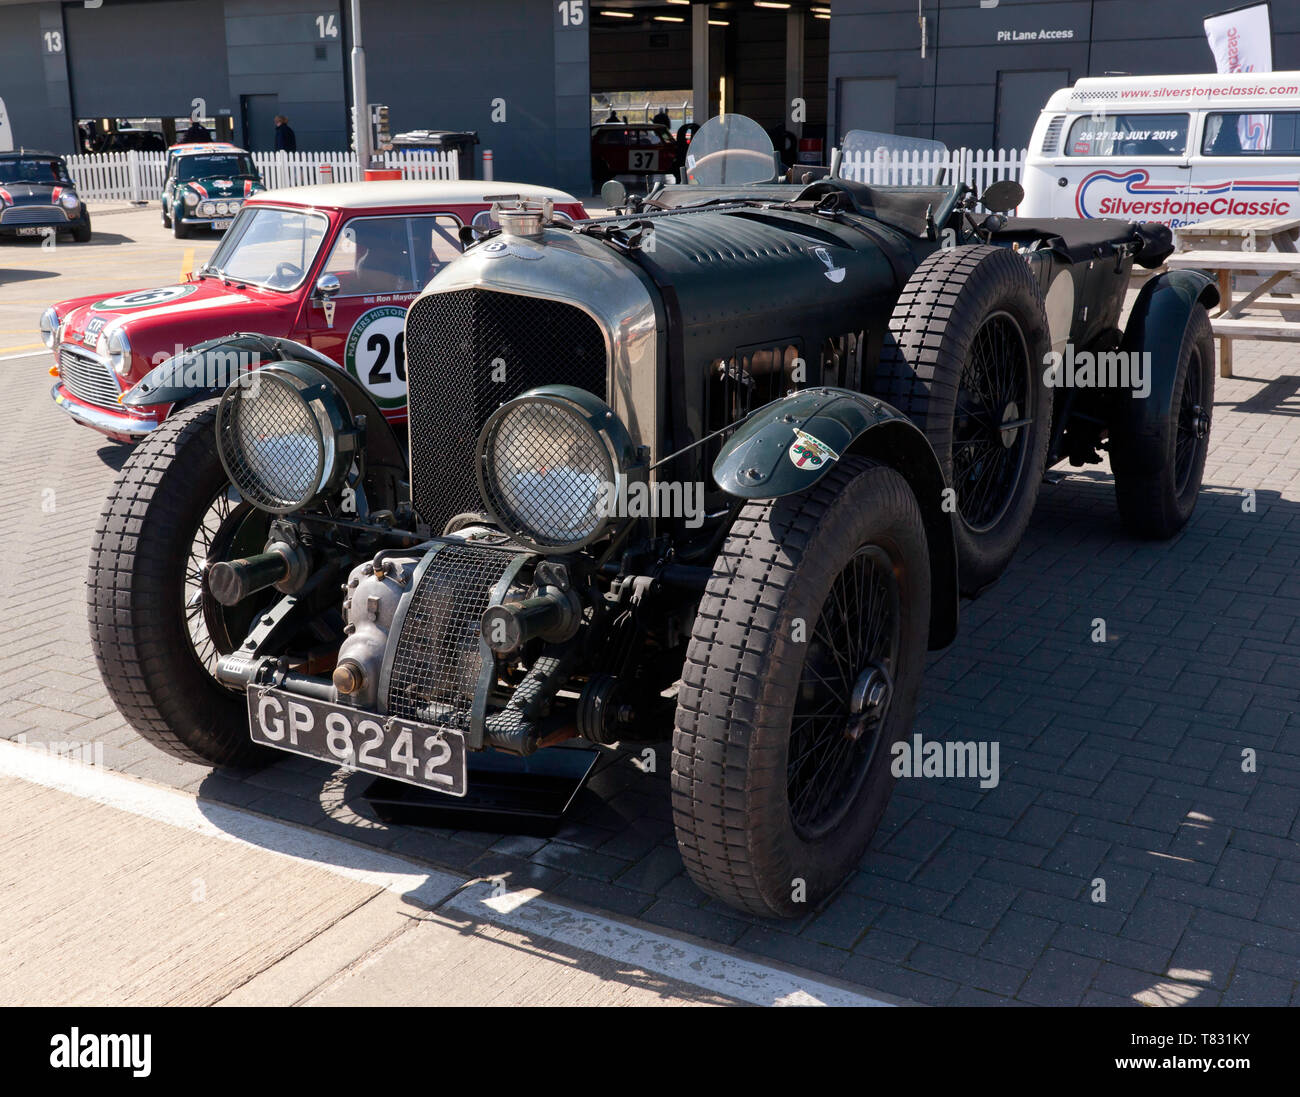 A Green, 1931 Pre-War  Bentley Blower  on display,  in front of the Wing, during the 2019 Silverstone Classic Media Day - Stock Image